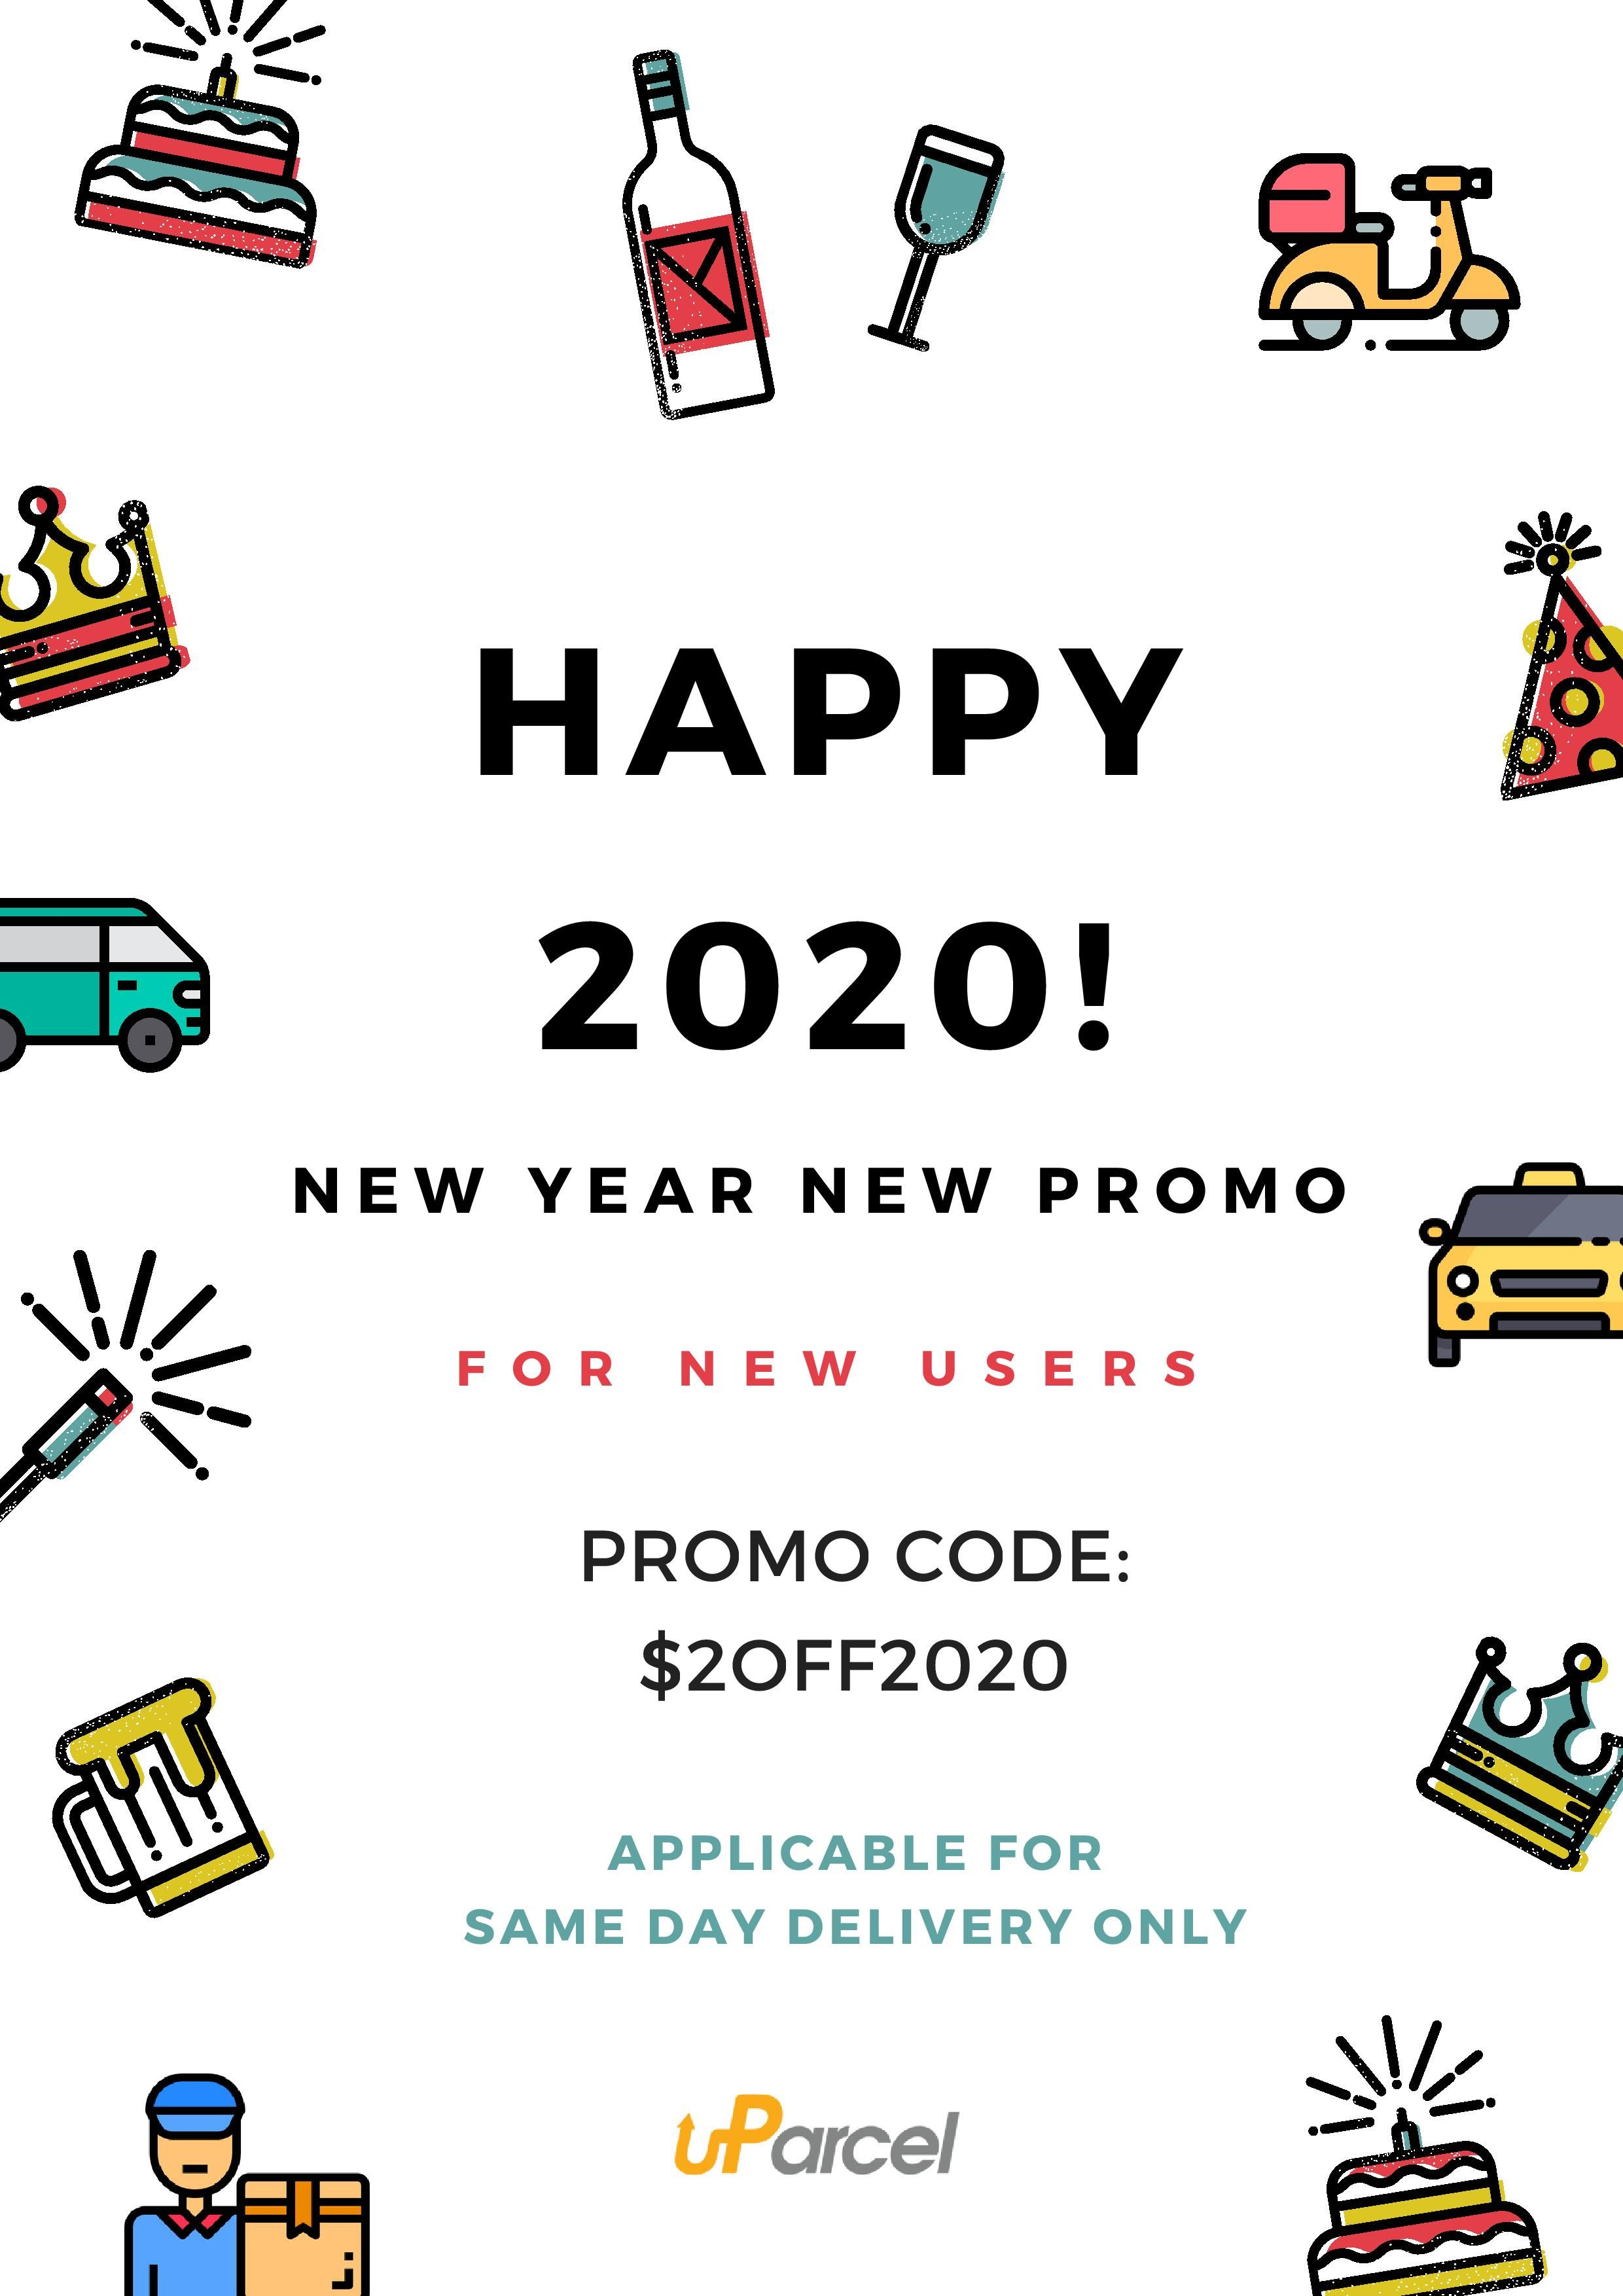 Grab the new offer by uParcel in 2020 Delivery service